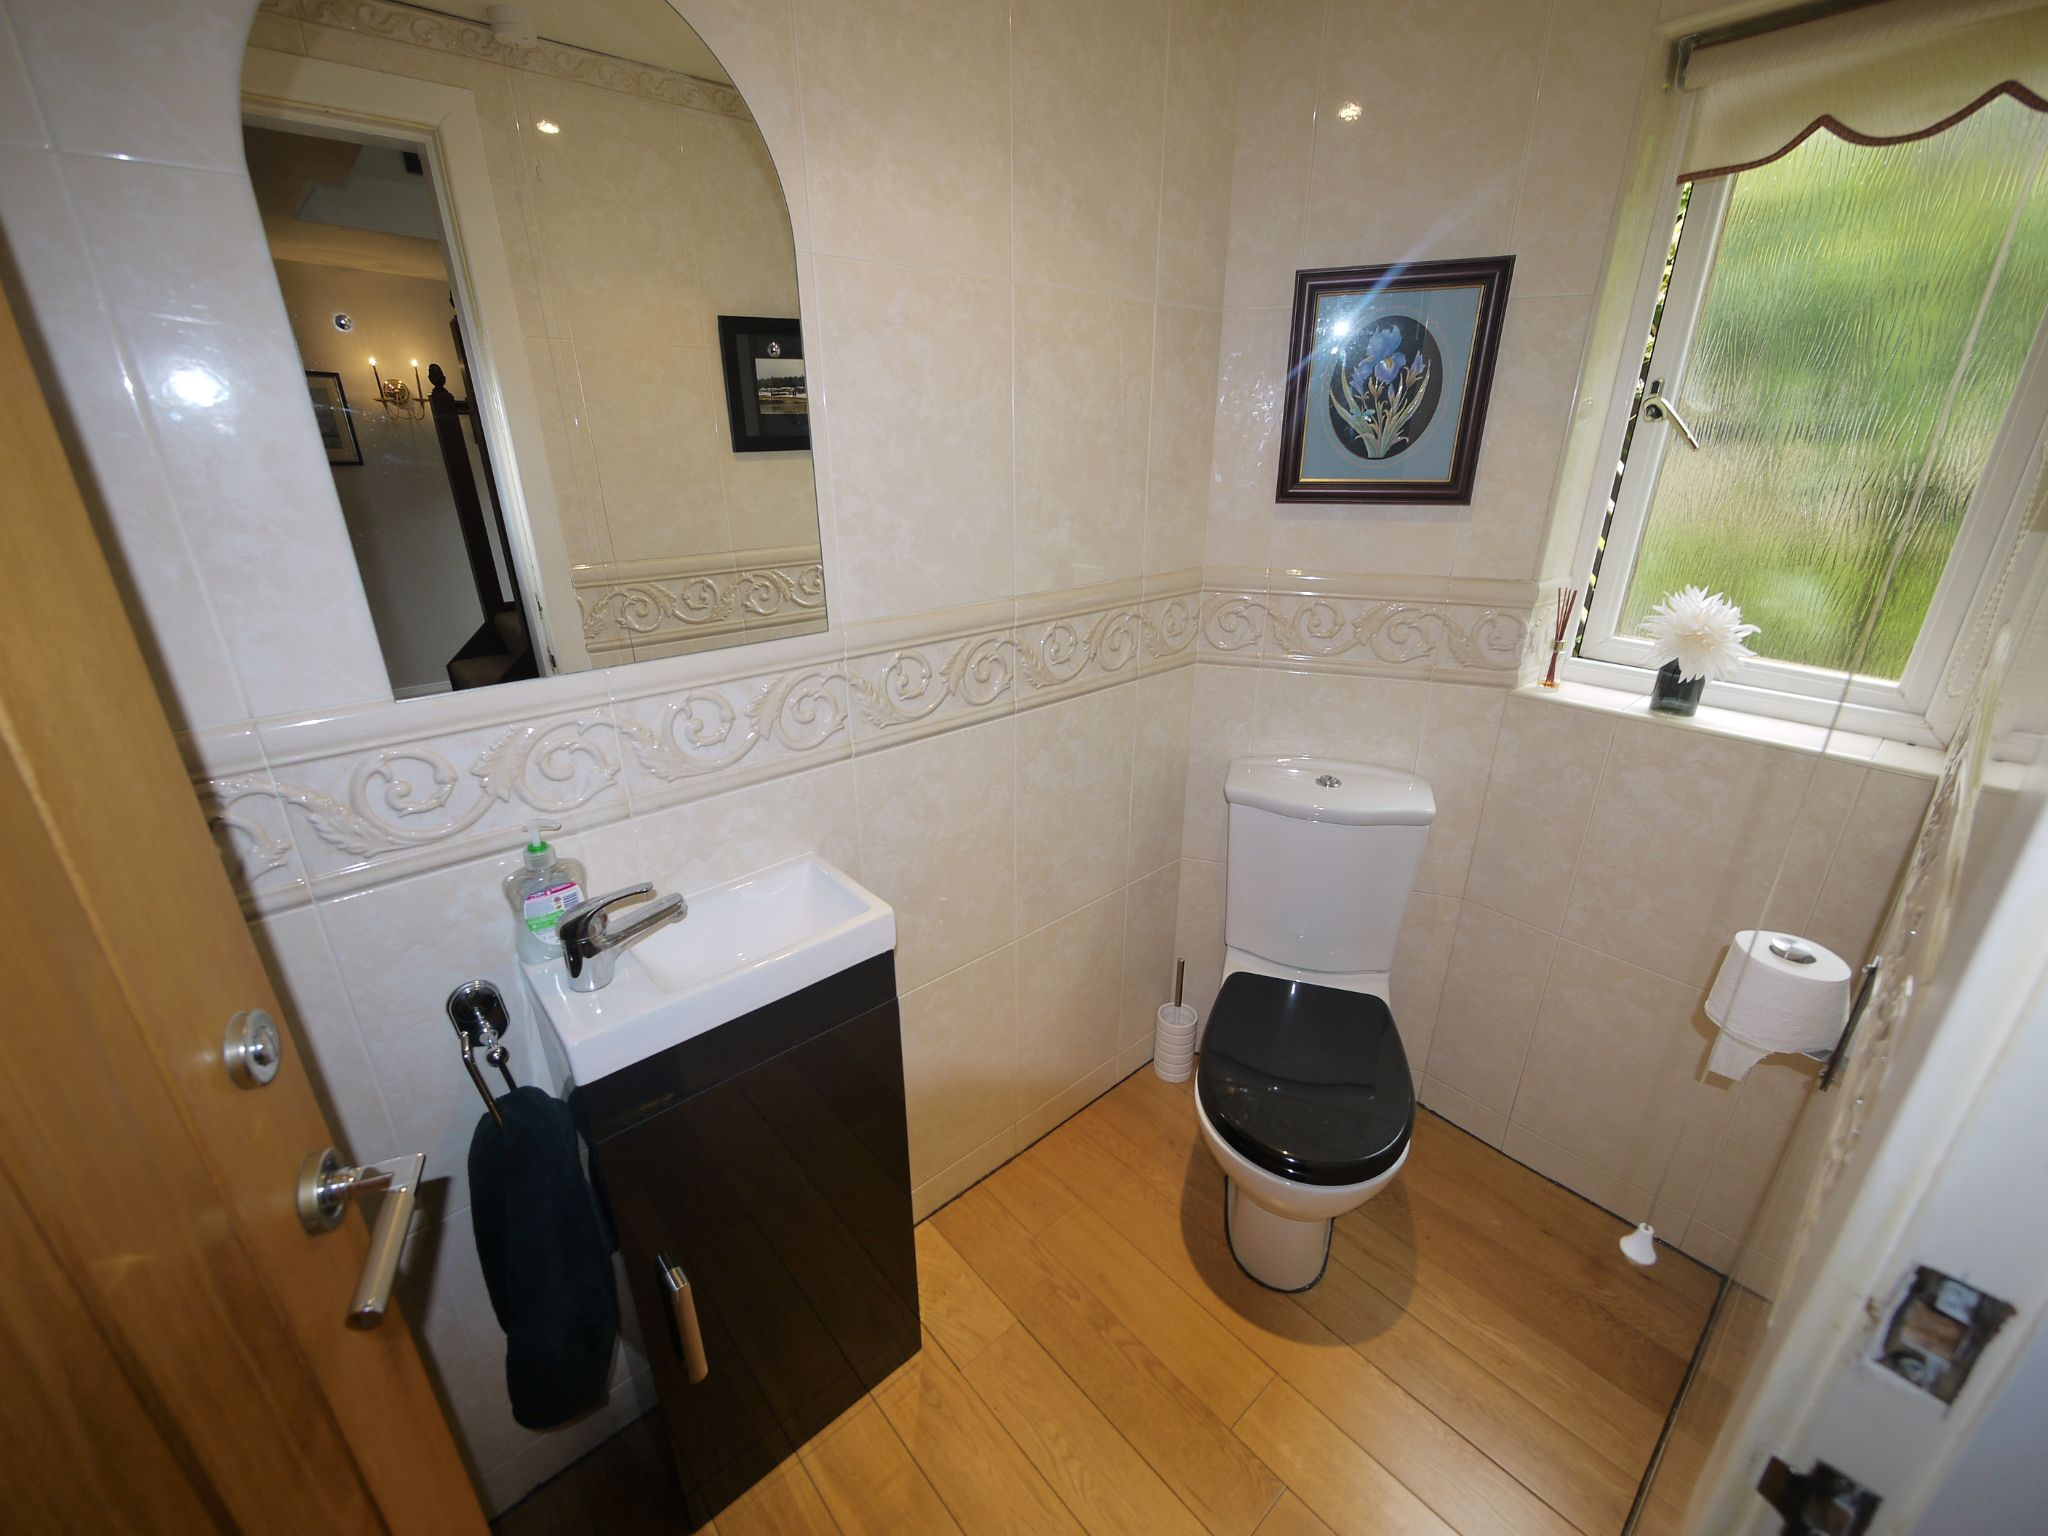 4 bedroom detached house For Sale in Brighouse - Cloakroom.